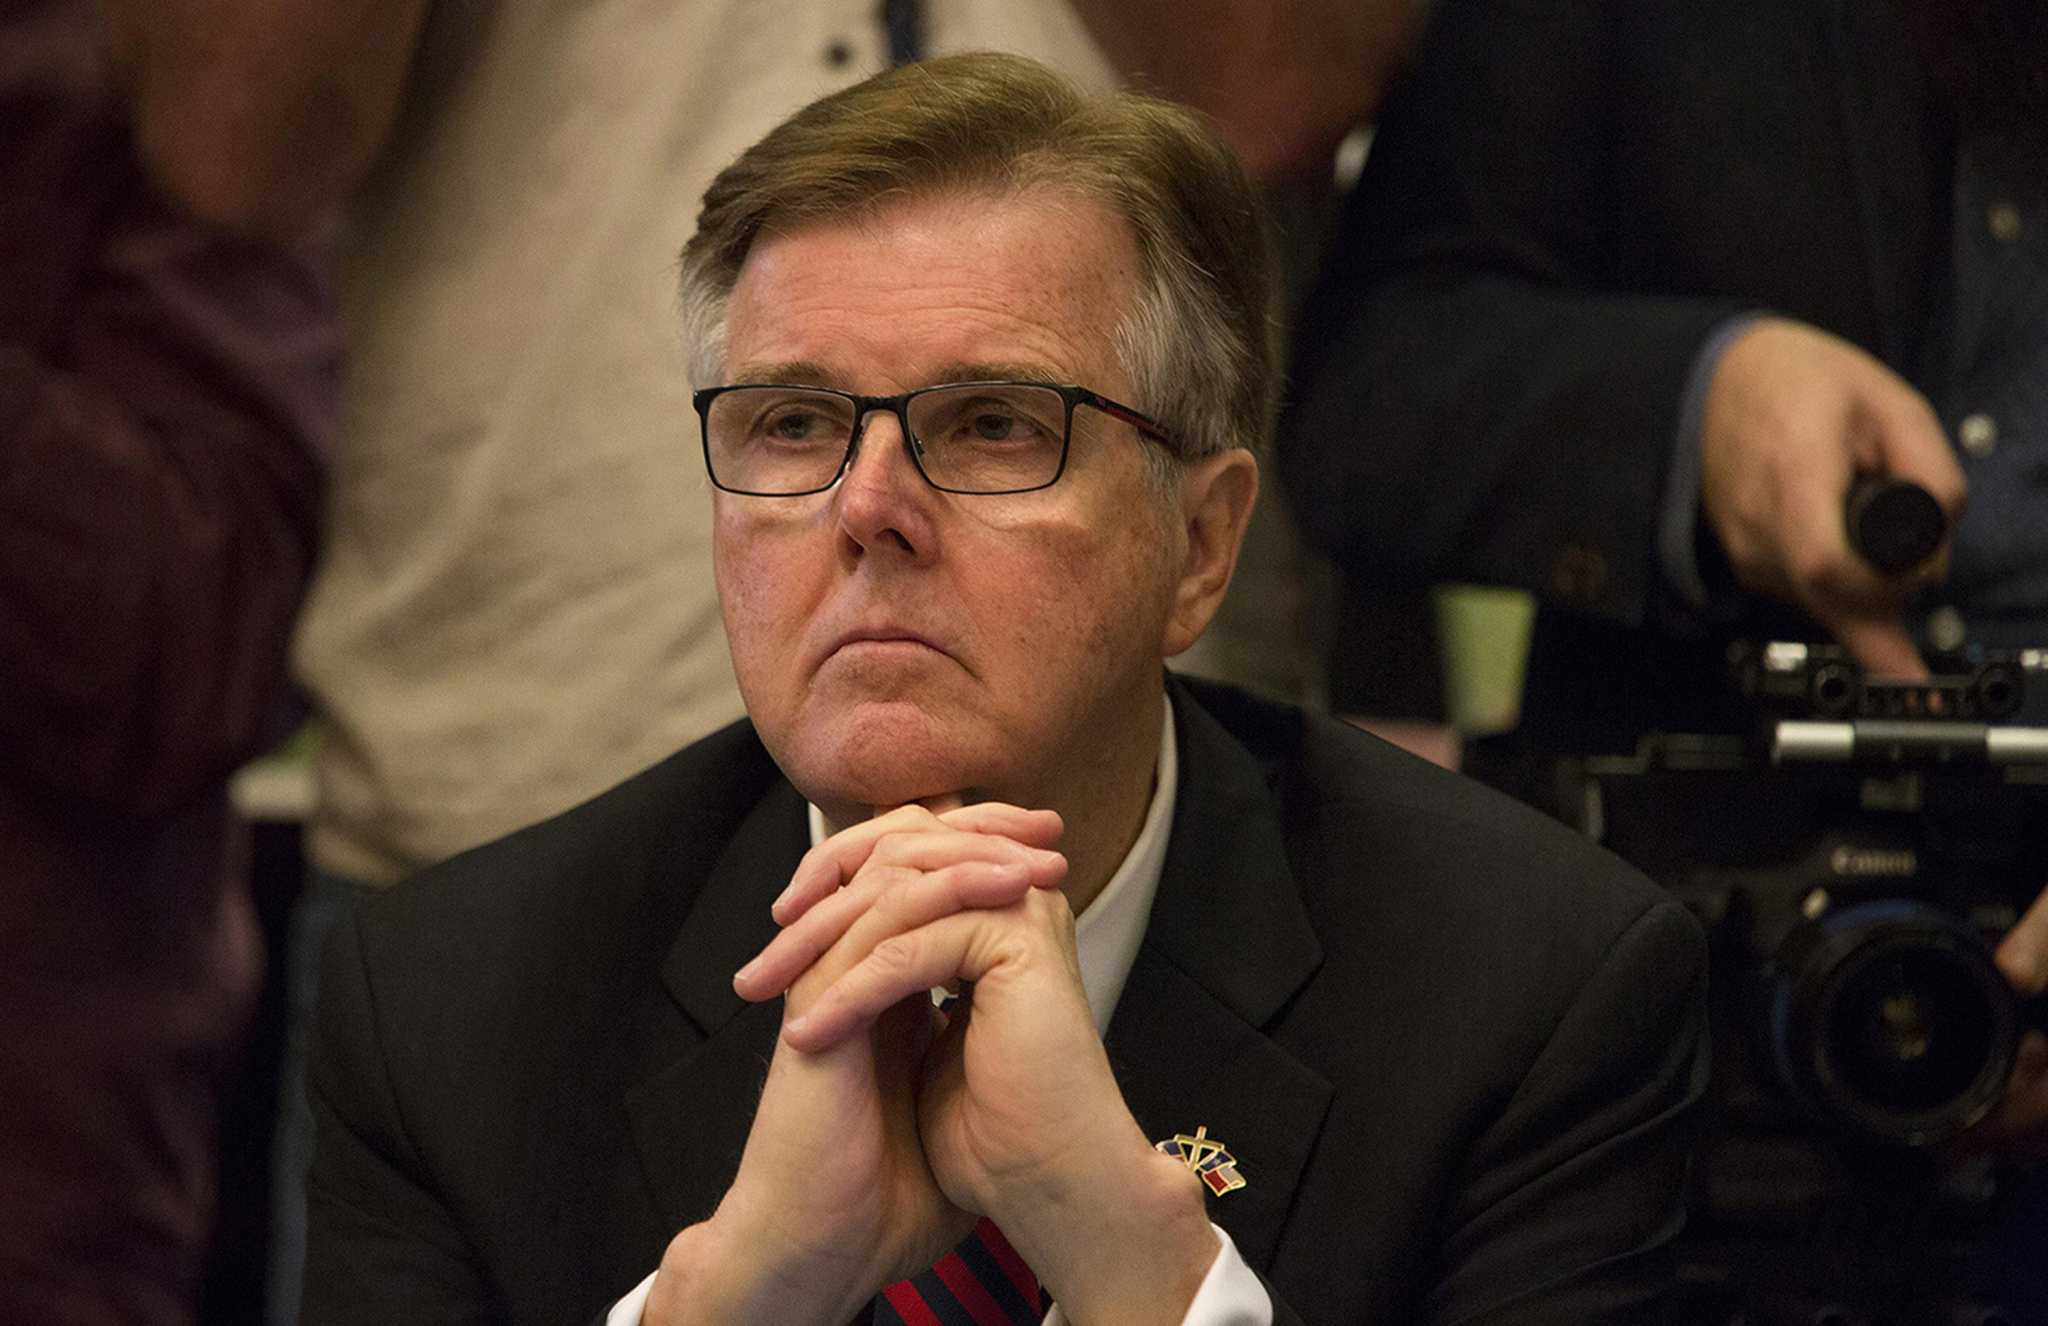 Fact Check: Dan Patrick says Austin is among 'most dangerous' cities in U.S., Texas